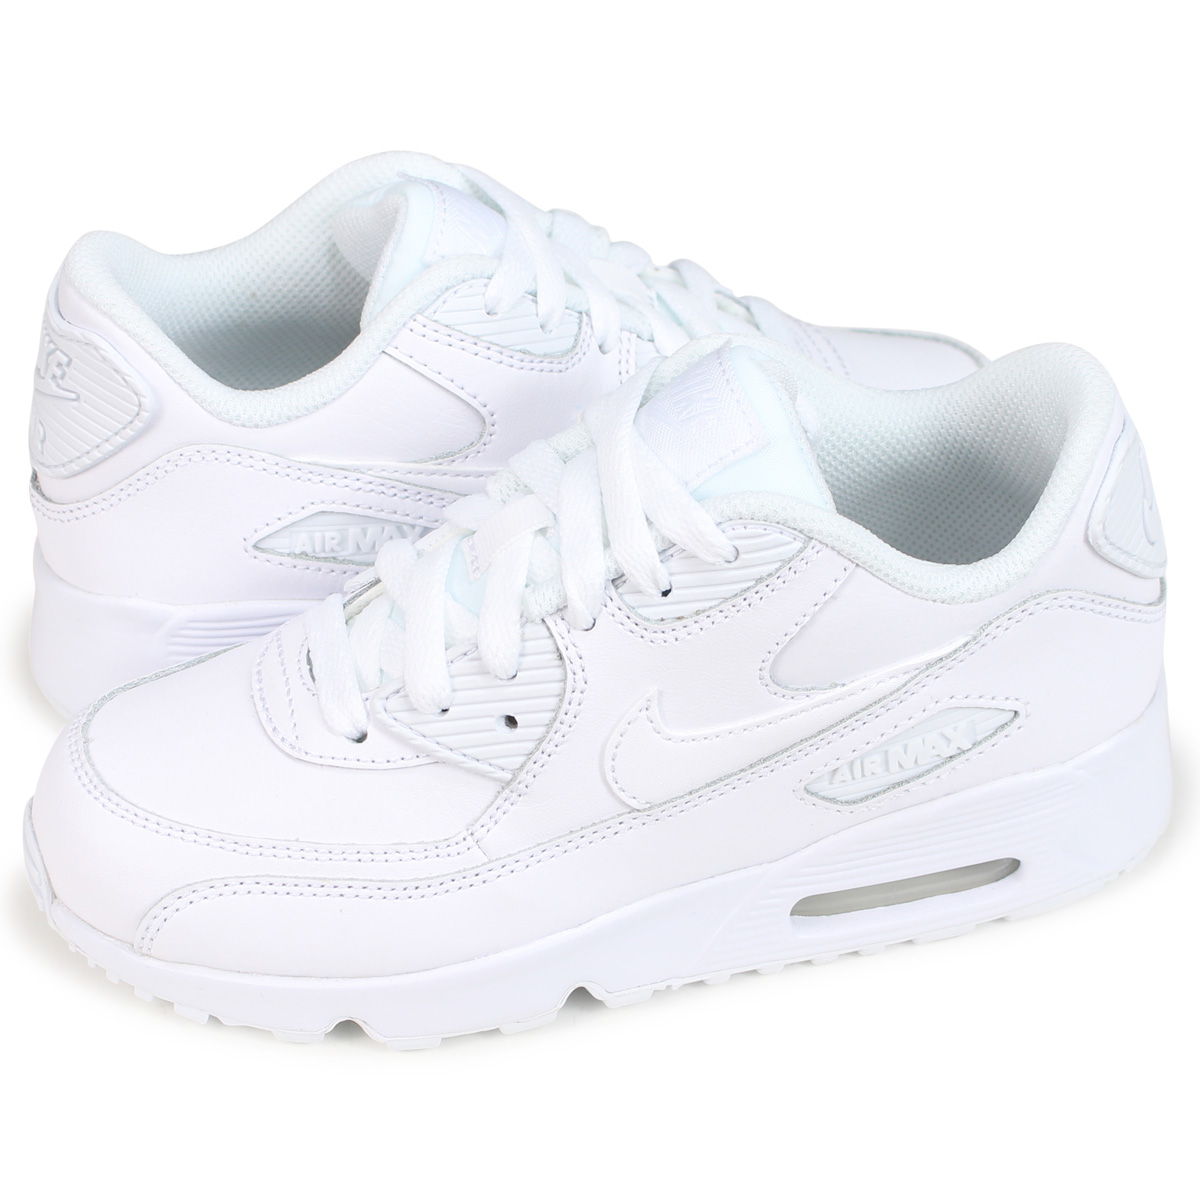 NIKE AIR MAX 90 LTR PS 833,414 100 Kie Ney AMAX 90 LTR PS